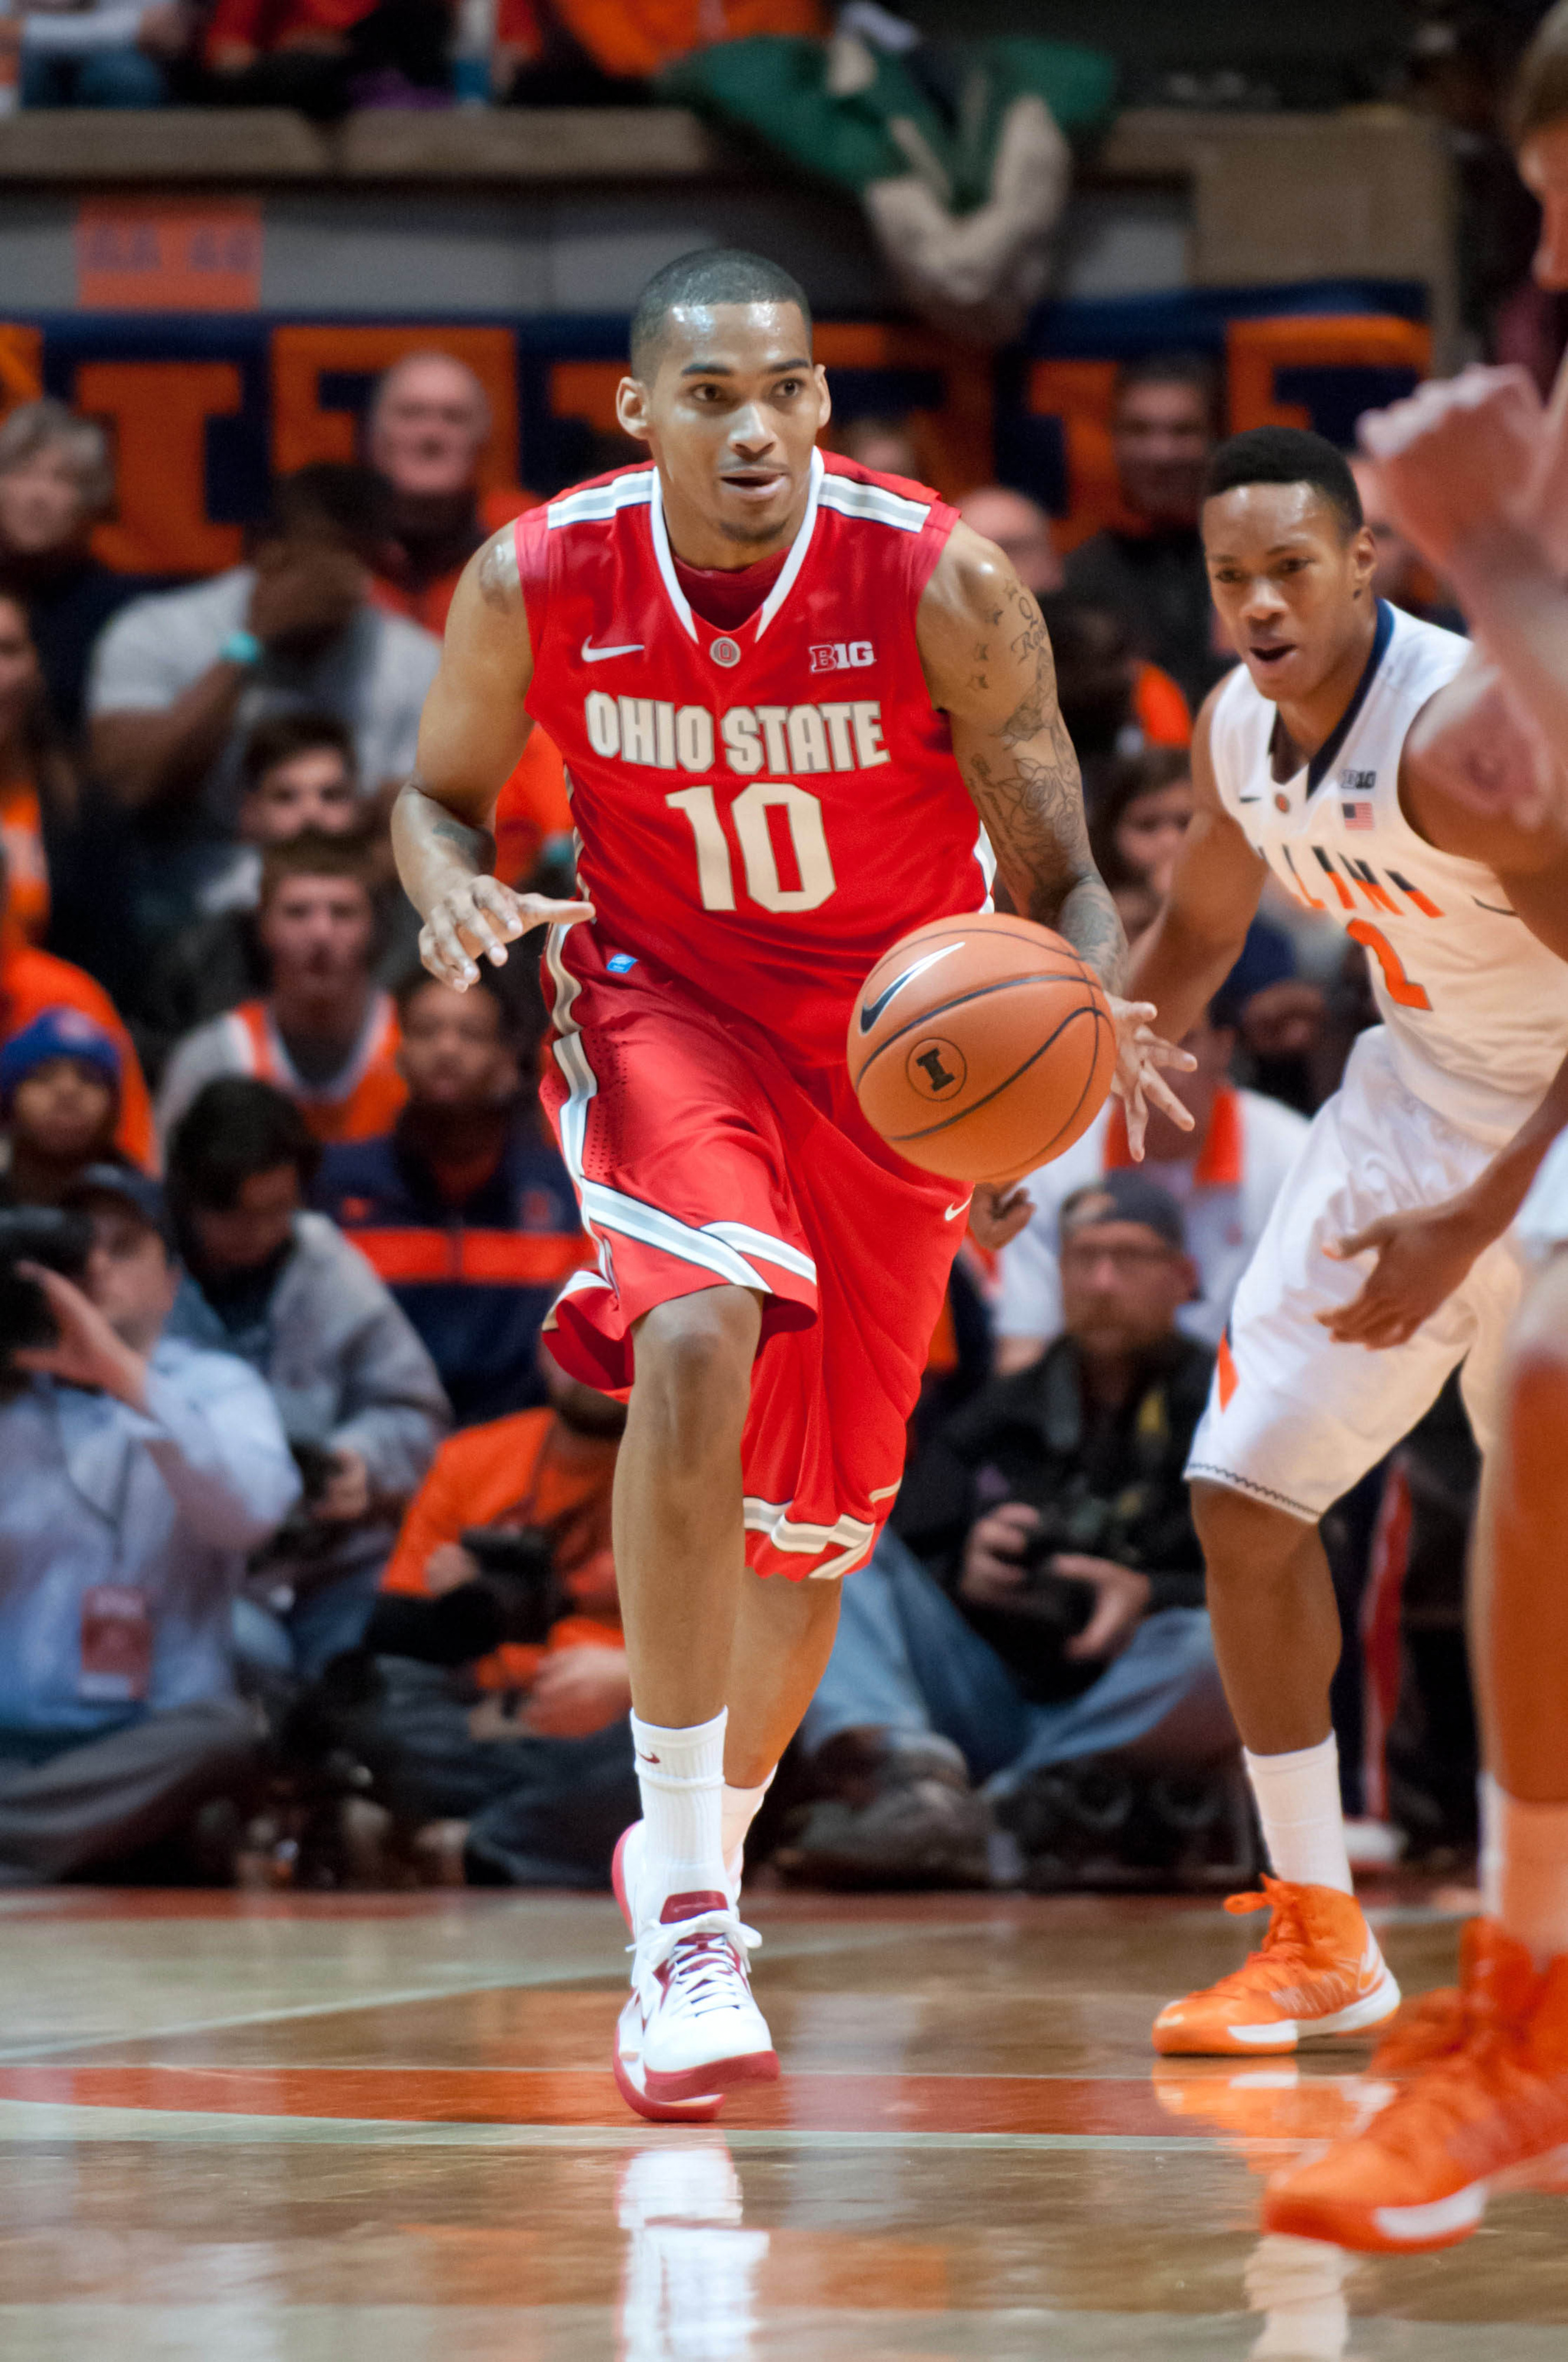 Ohio State Basketball roster 2013 - Land-Grant Holy Land